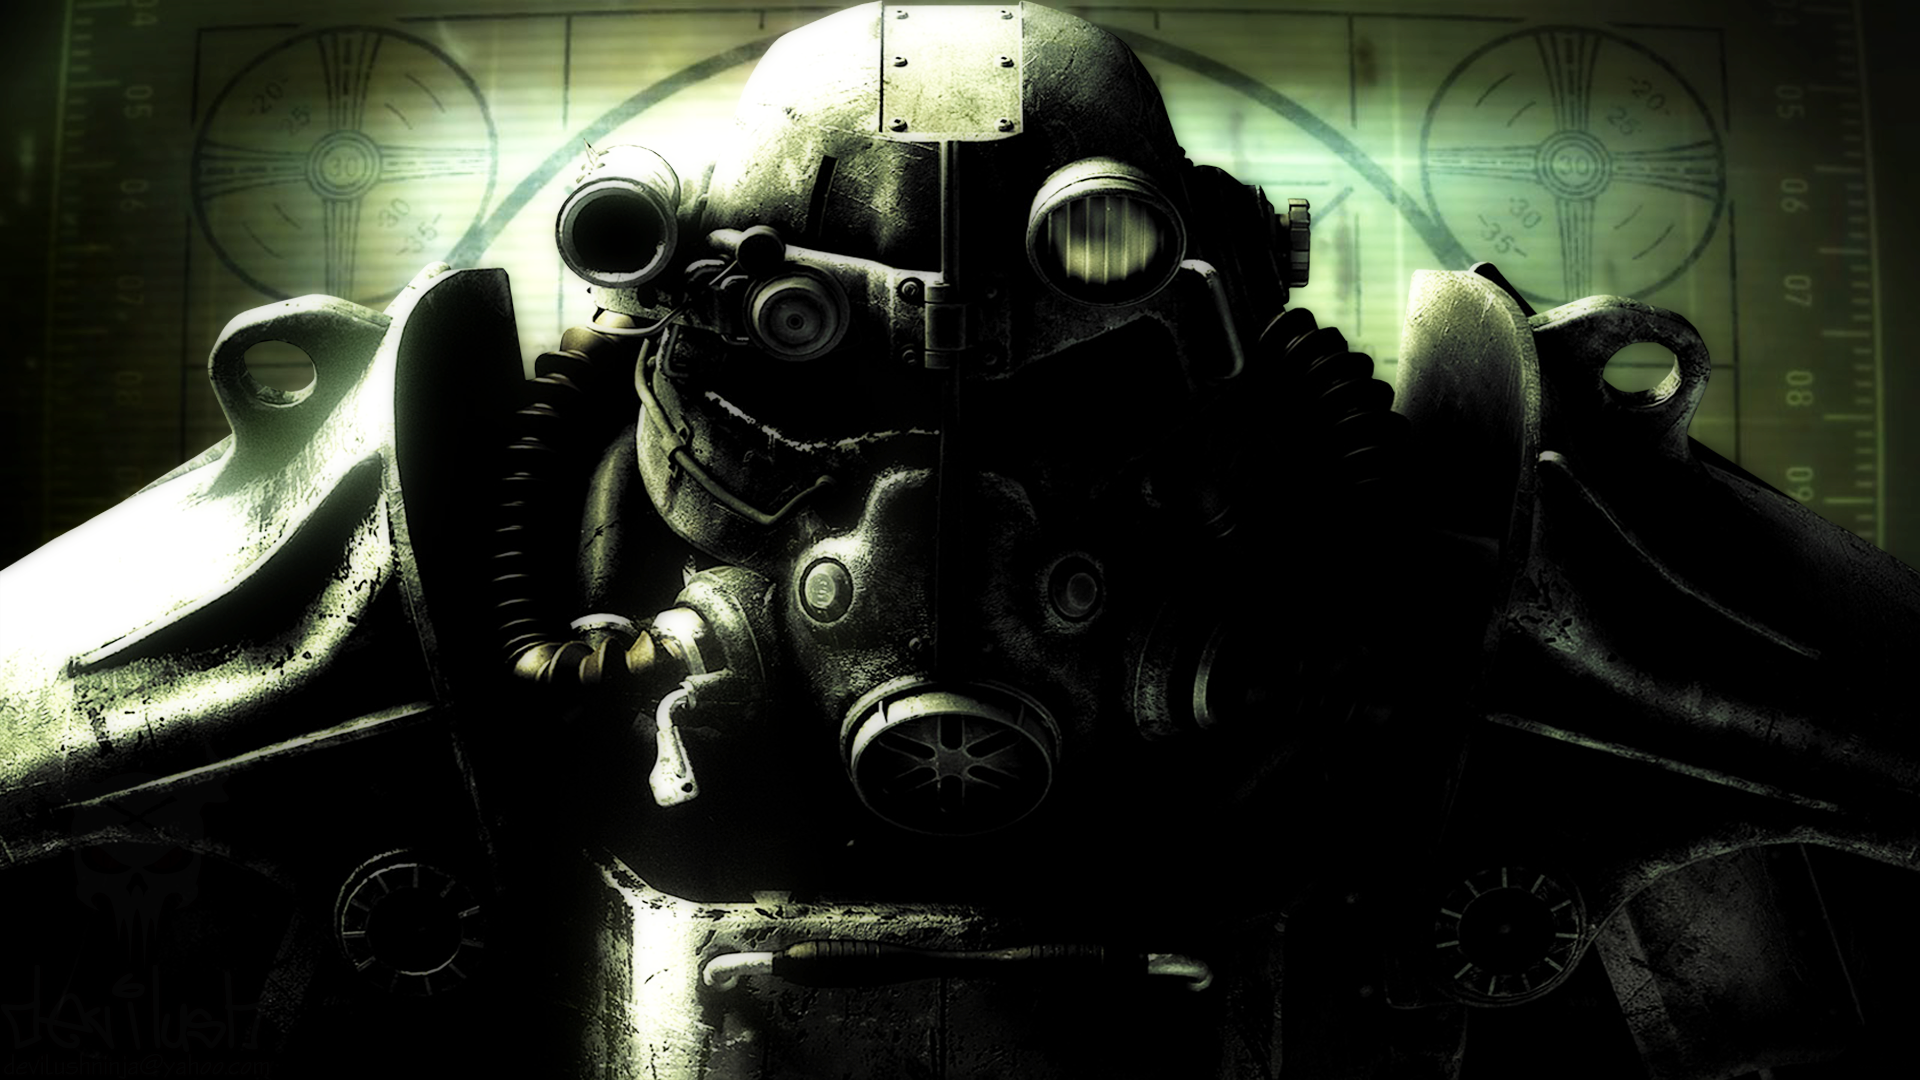 Fallout 3 bos ps3 hd wallpaper by devilushninja on deviantart fallout 3 bos ps3 hd wallpaper by devilushninja thecheapjerseys Gallery